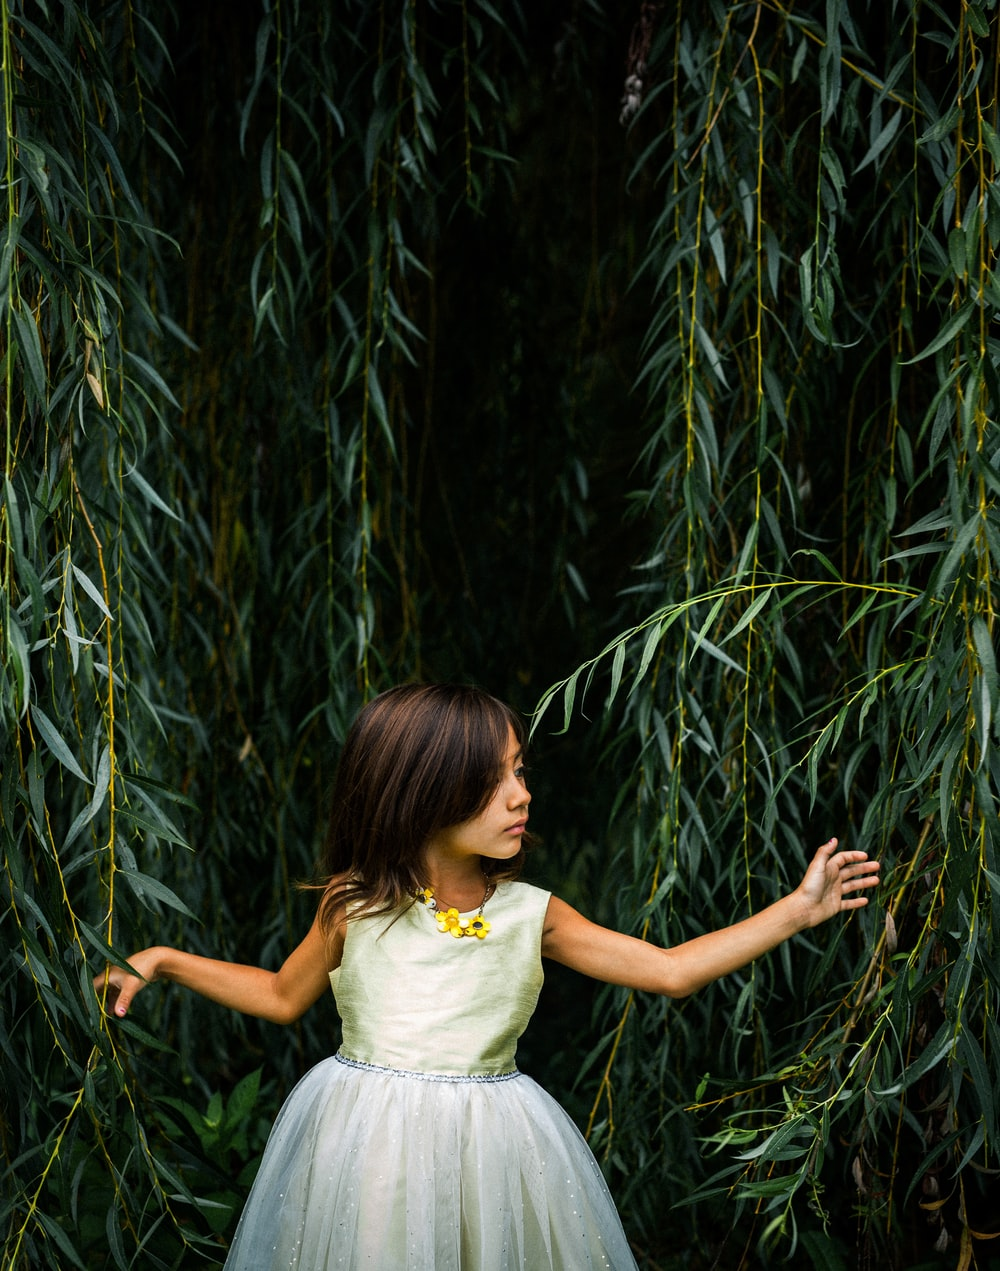 girl wearing dress standing near plants